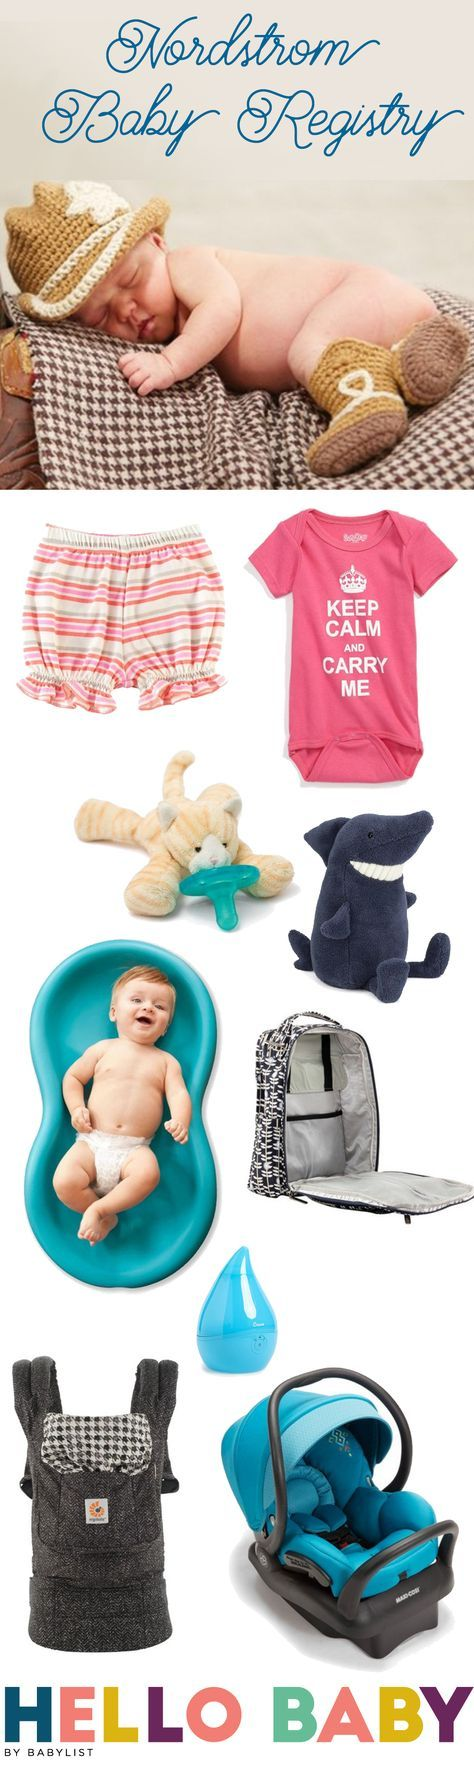 We combed the Nordstrom store looking for amazing finds for baby. Want to see what we discovered?